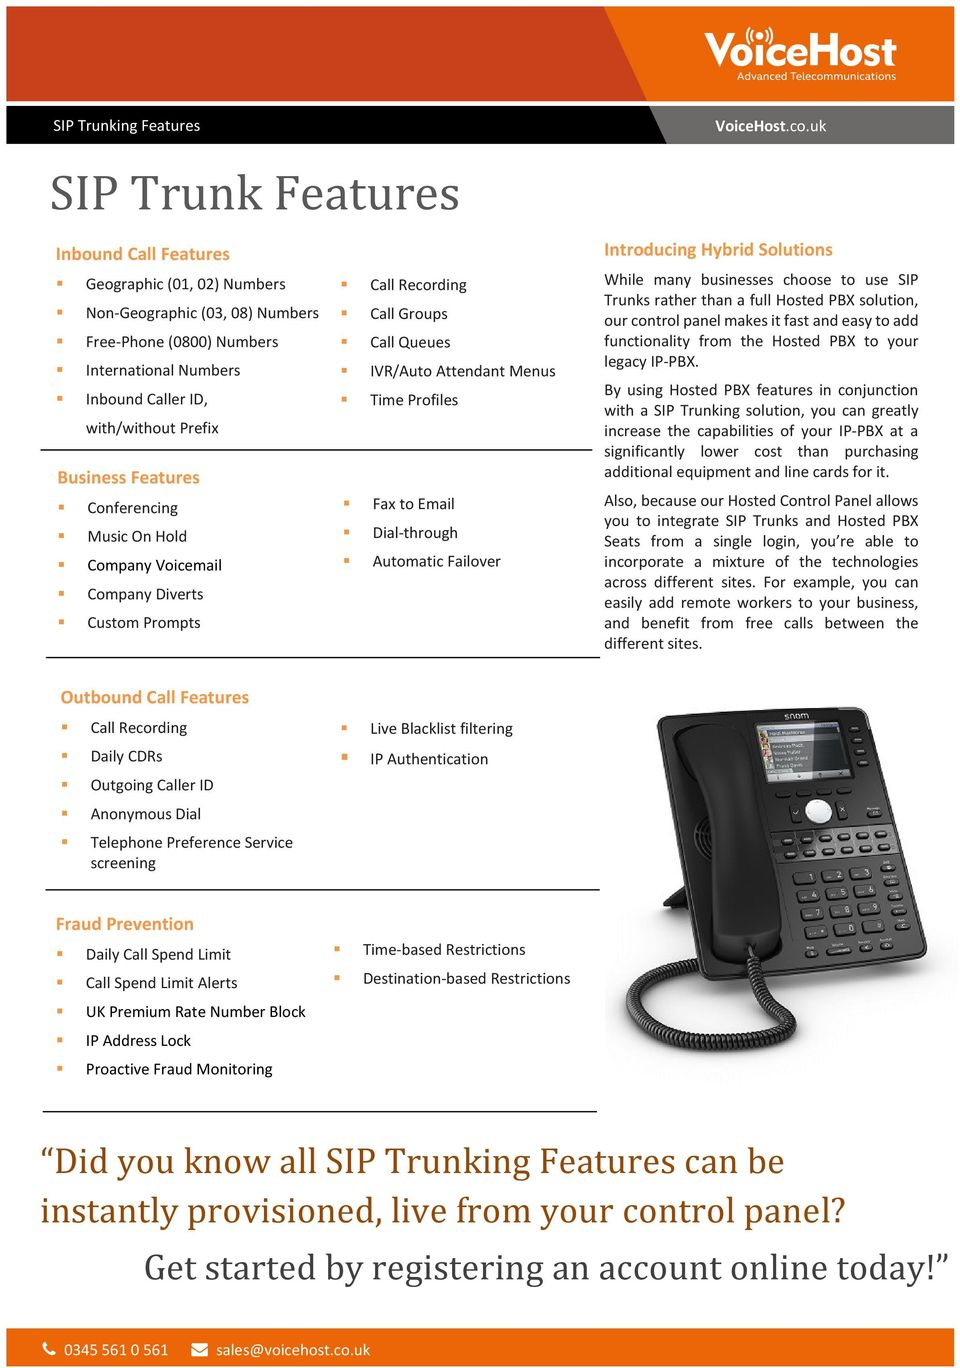 Email Dial-through Automatic Failover Introducing Hybrid Solutions While many businesses choose to use SIP Trunks rather than a full Hosted PBX solution, our control panel makes it fast and easy to